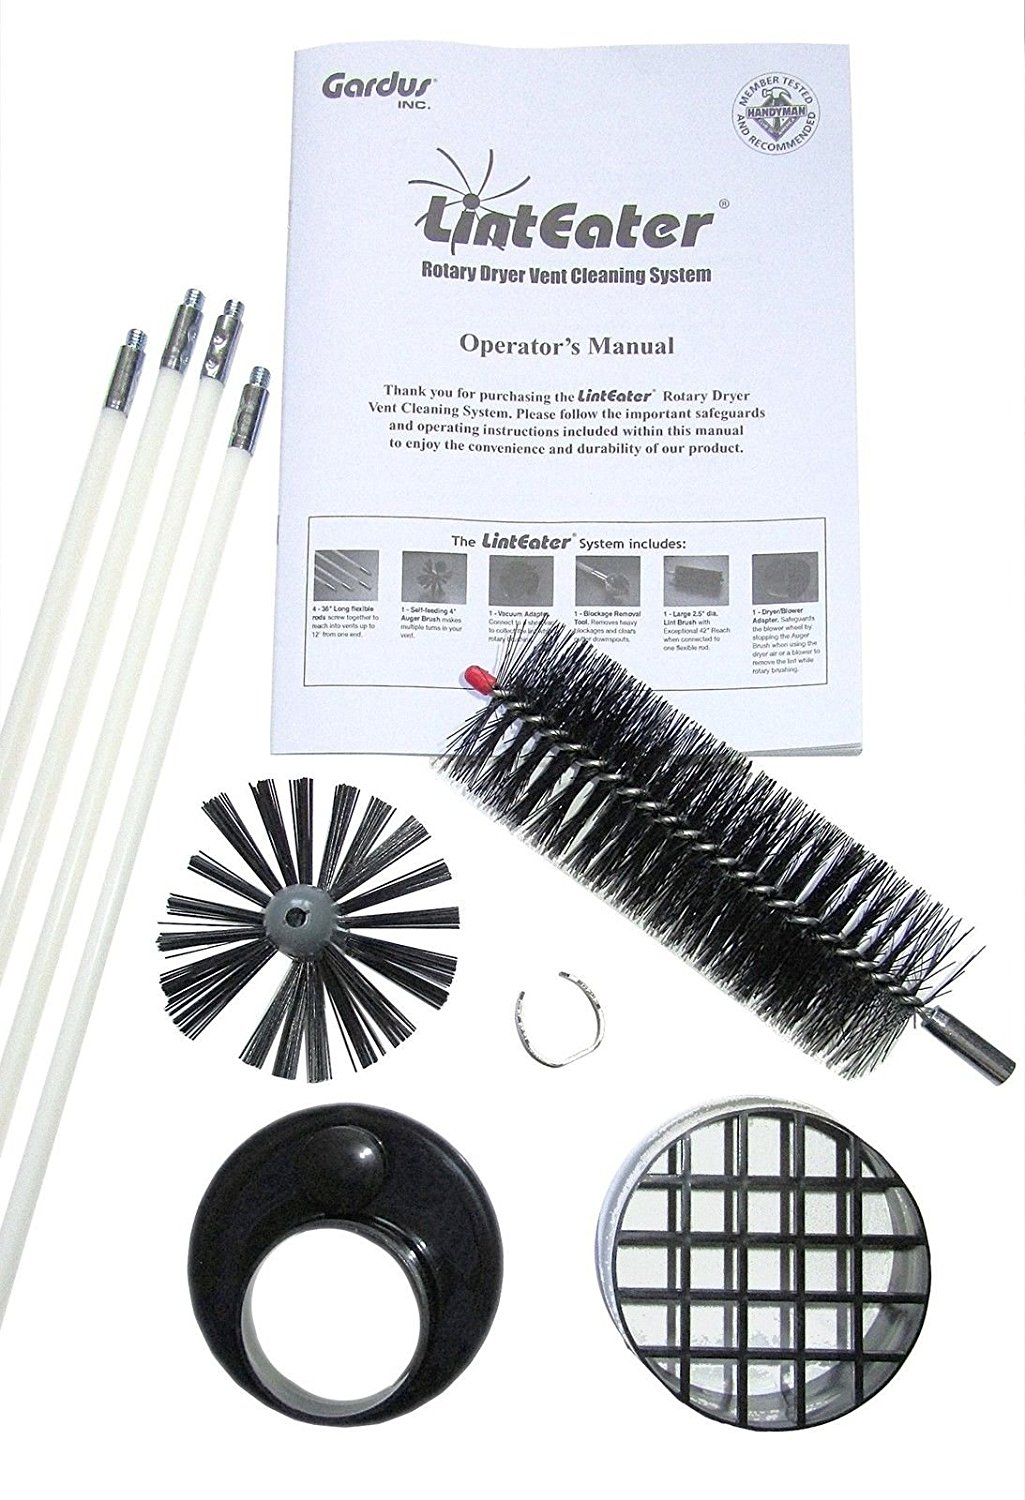 Gardus RLE202 LintEater 10-Piece Rotary Dryer Vent Cleaning System Gardus __#G451YH4 51IO3447184